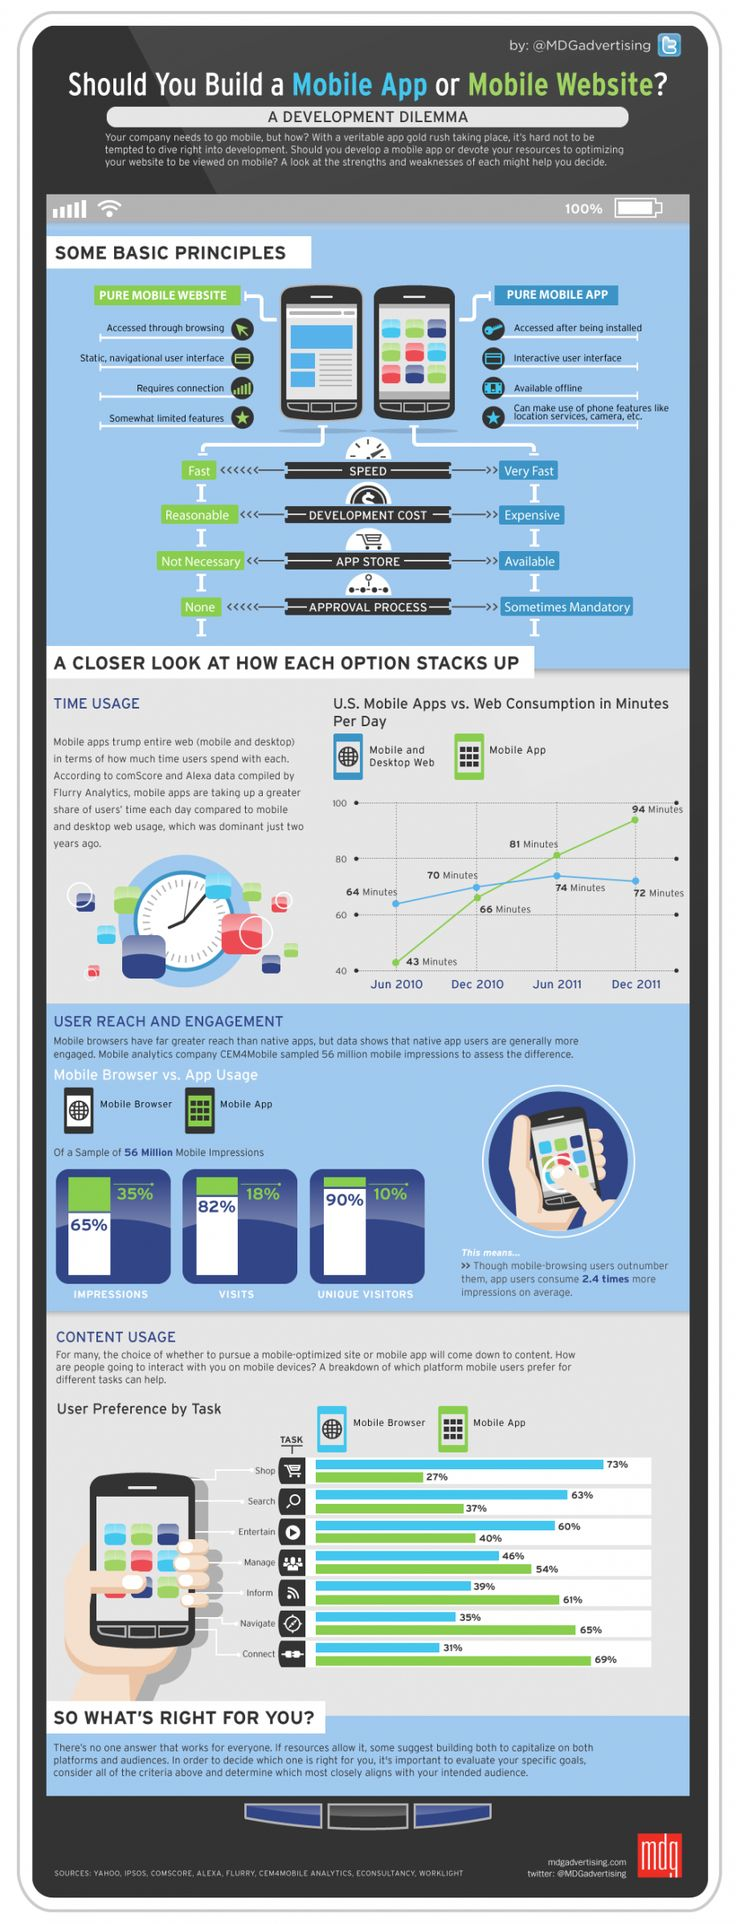 Should You Build a Mobile App or Mobile Website? #infographic